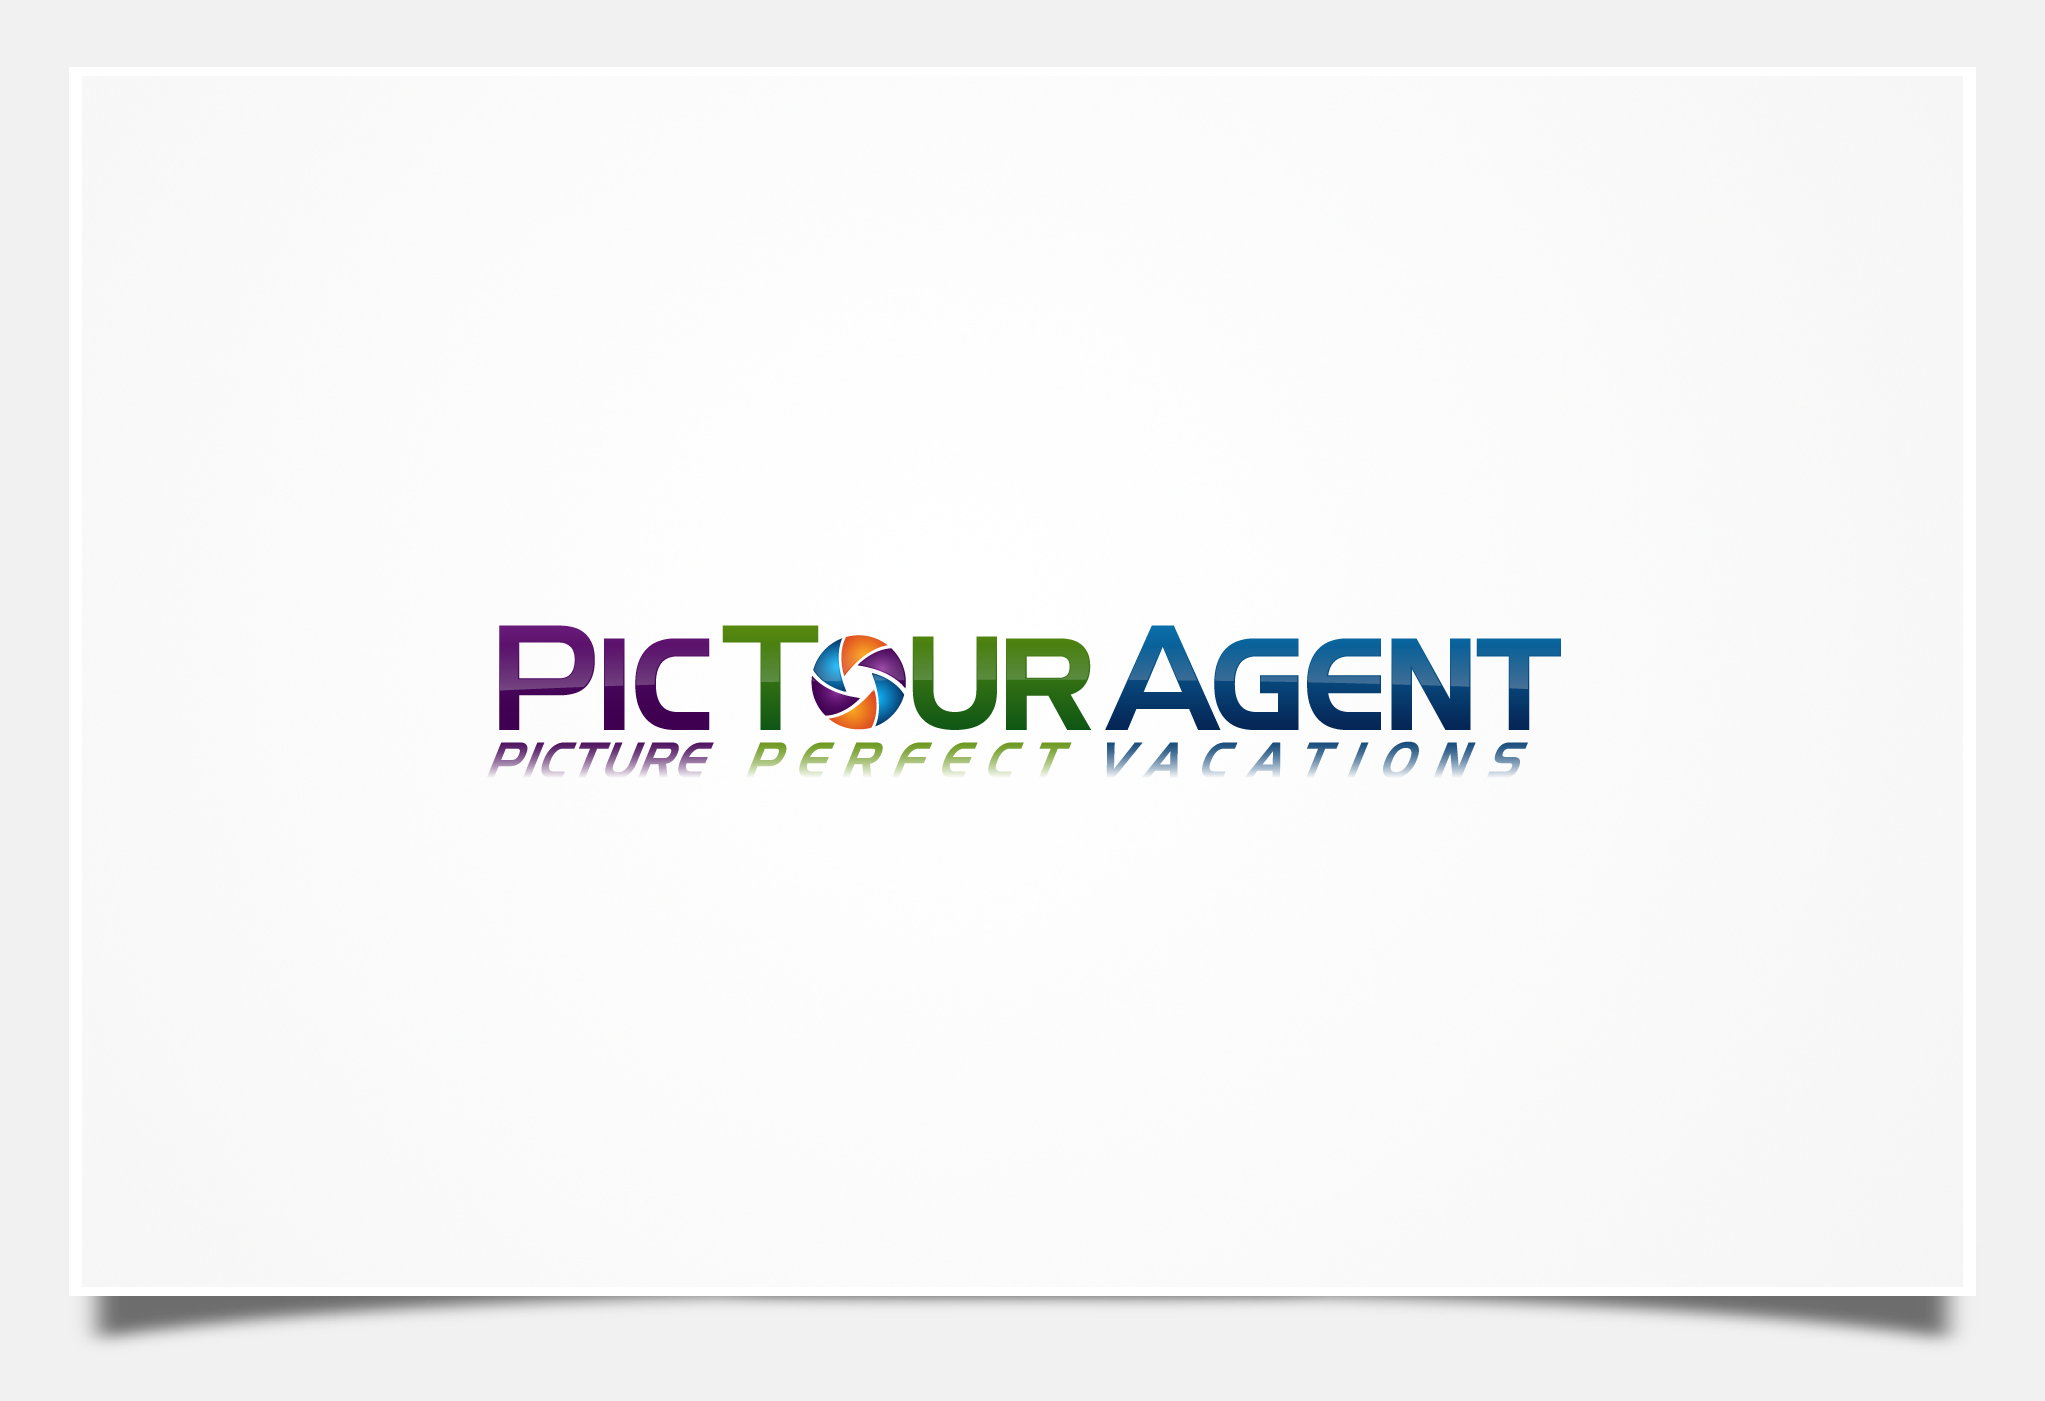 Create the next logo for PicTourAgent